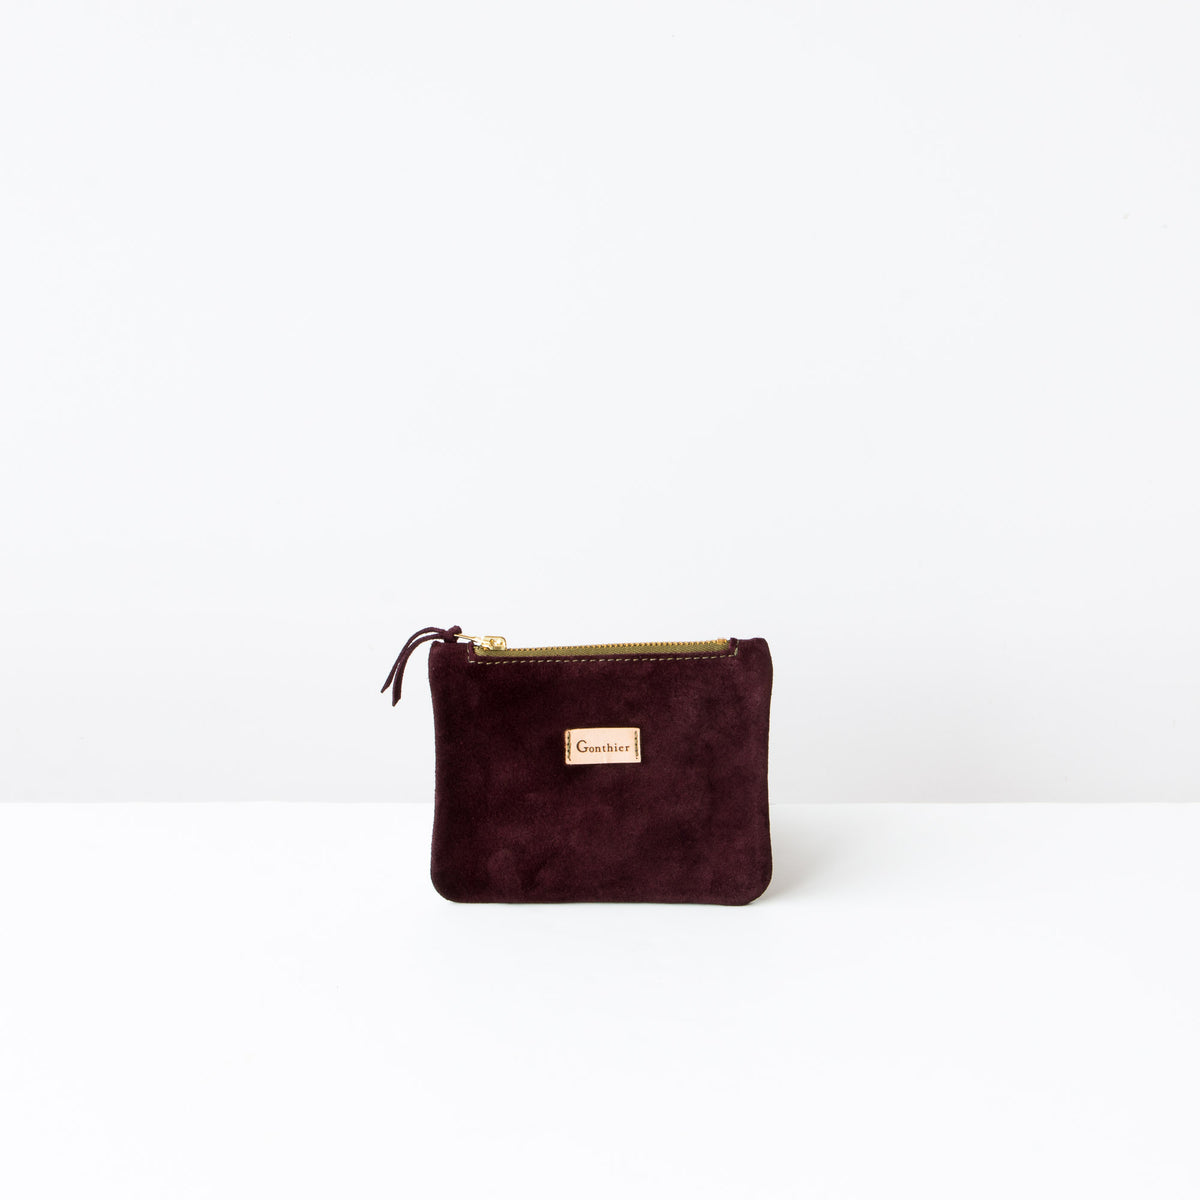 Bordeaux & Khaki - Handmade Small Wallet in Suede Calfskin - Sold by Chic & Basta